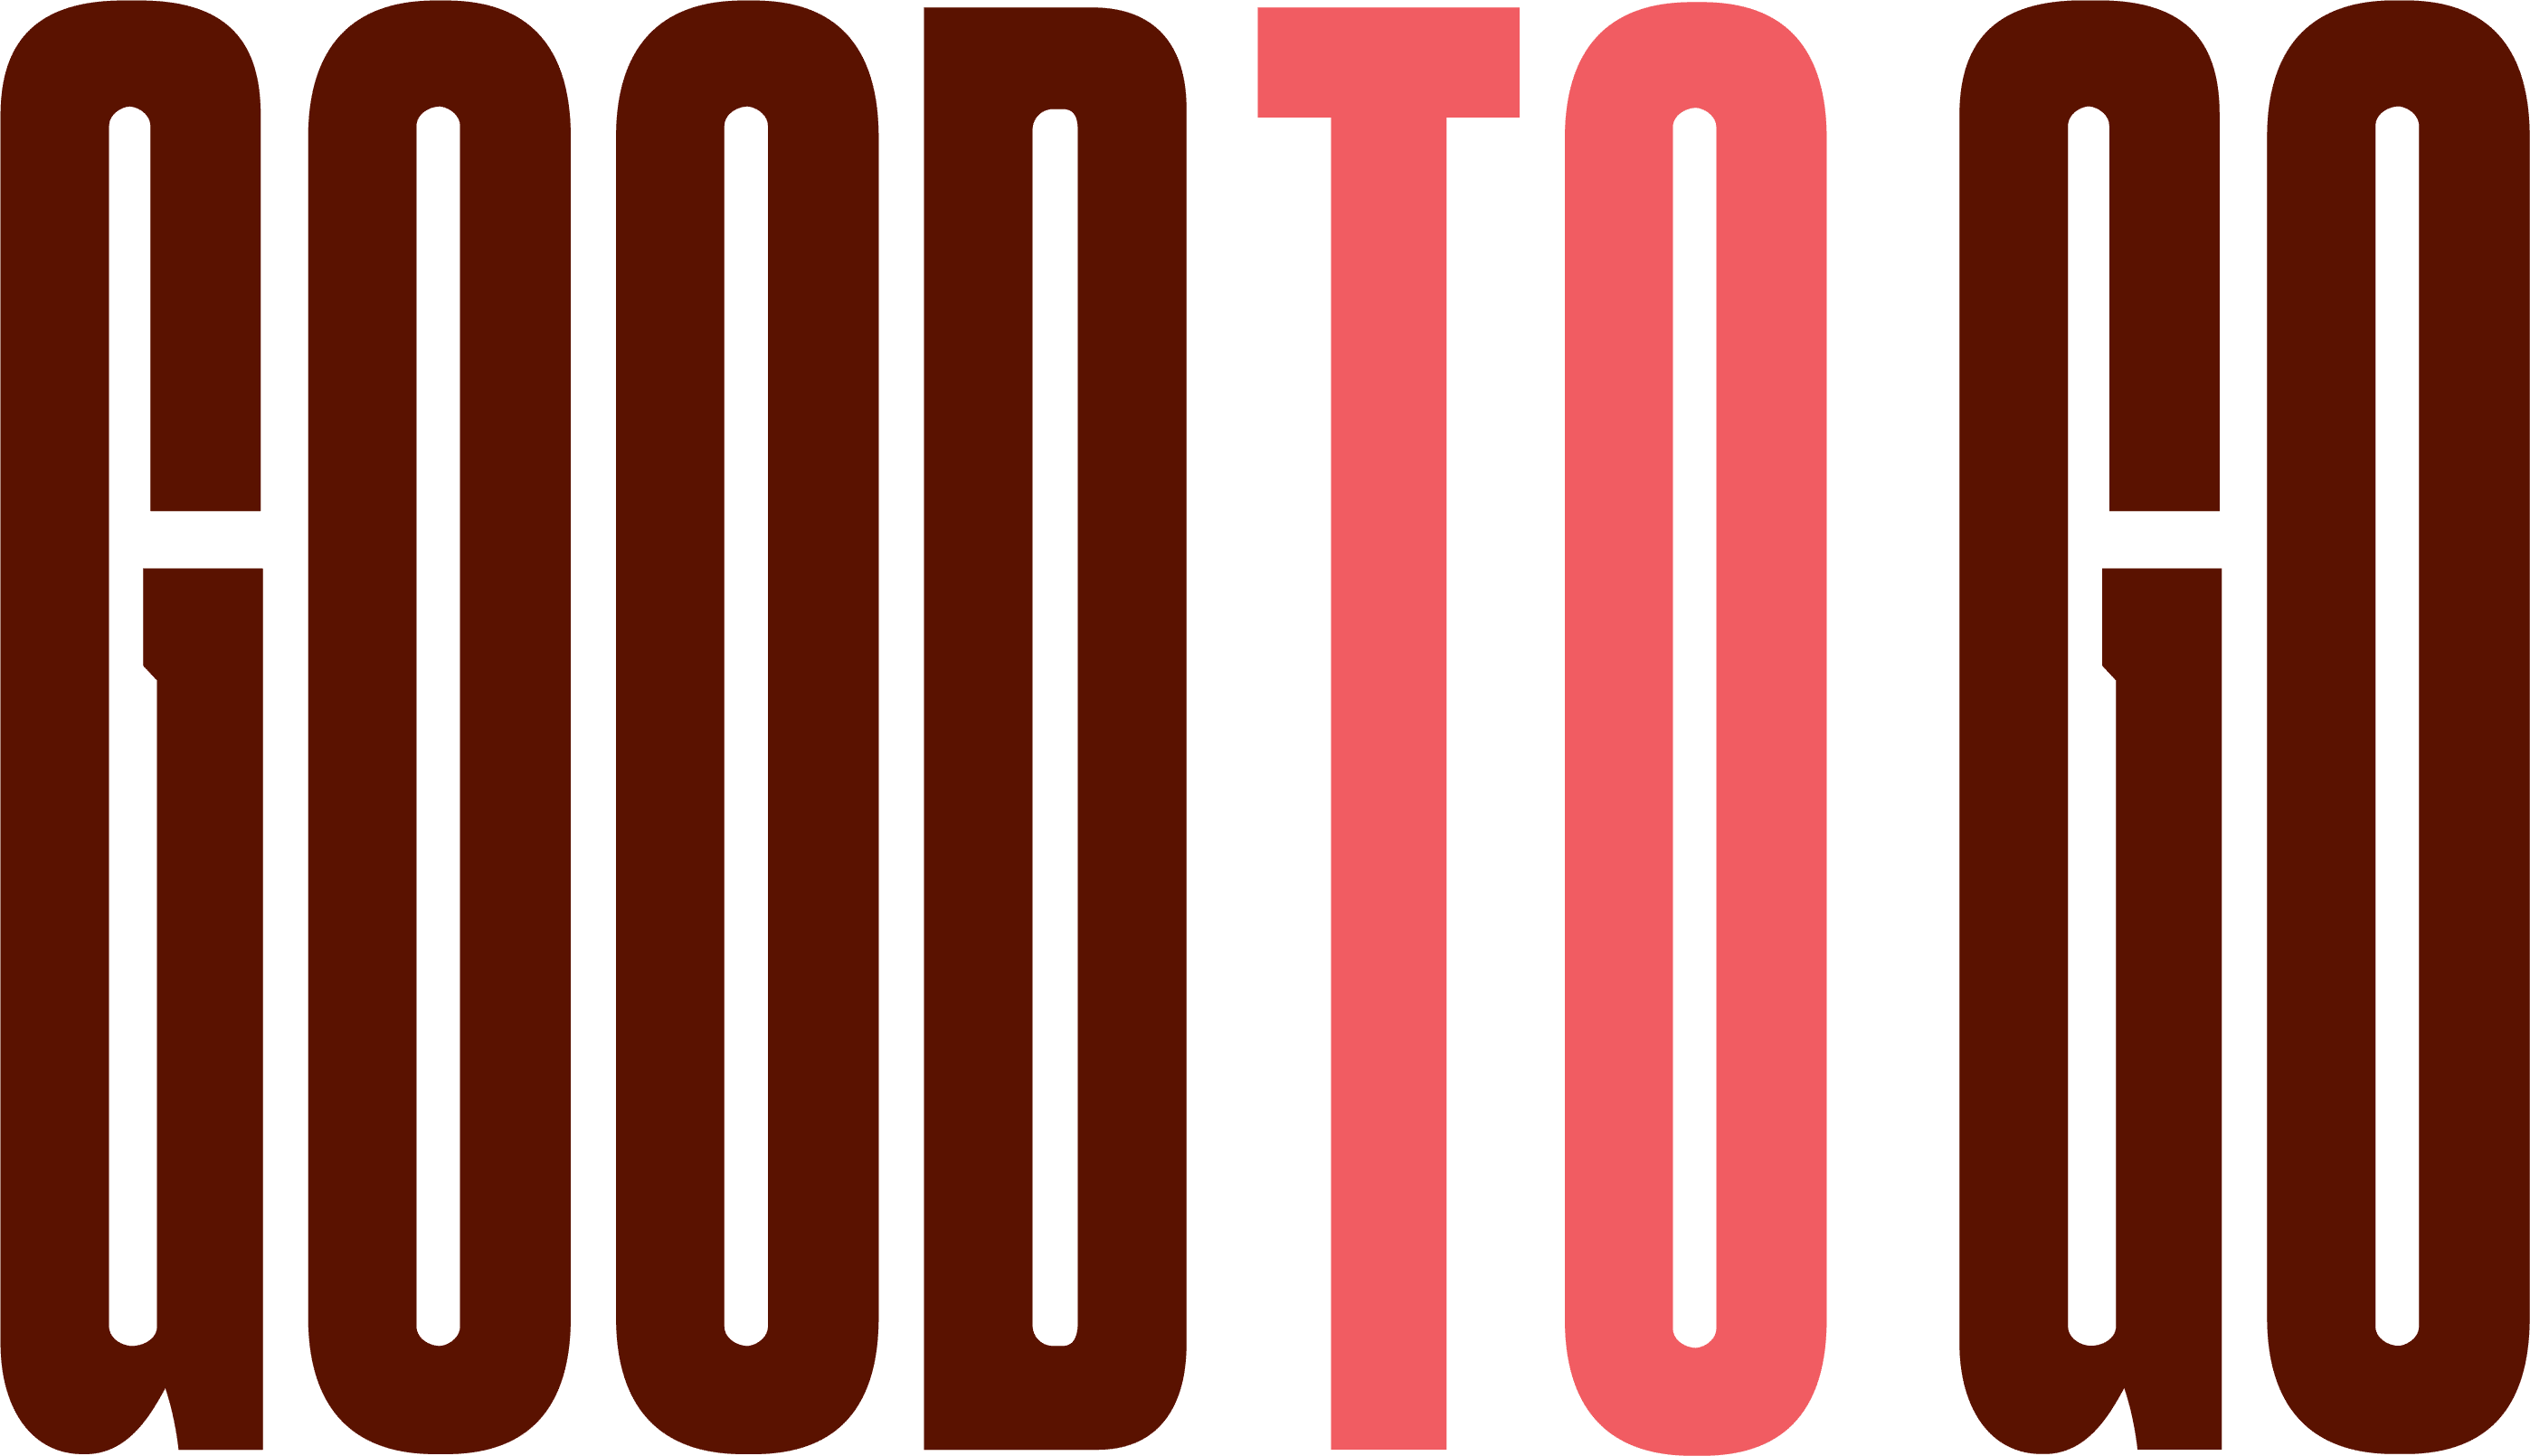 GOODTO GO Snack Bars Now Available at Whole Foods and Kroger